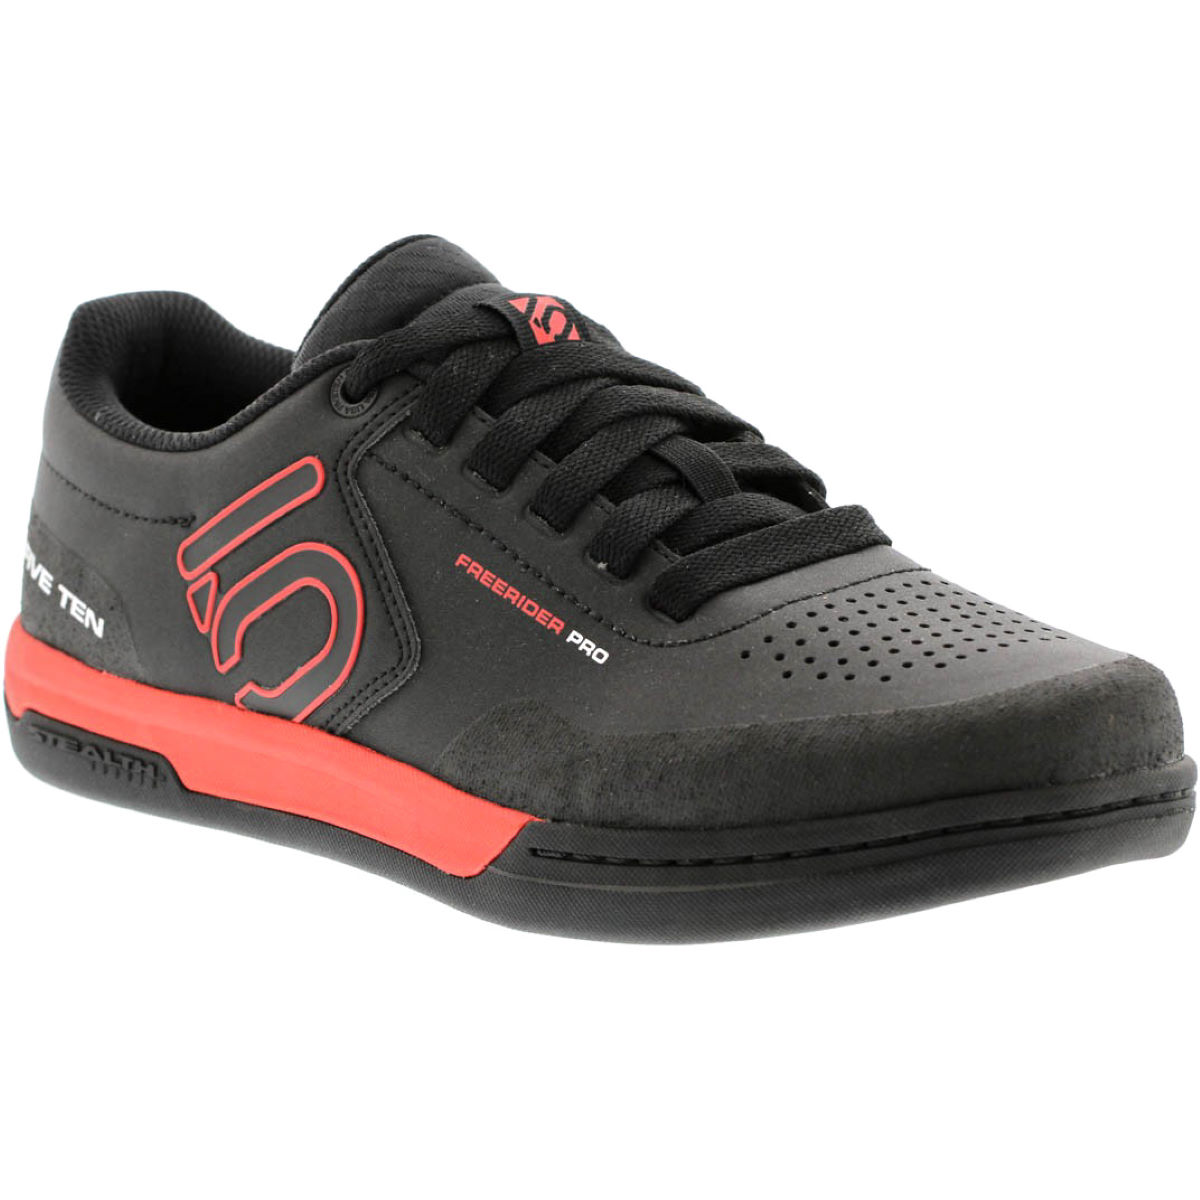 Five Ten Freerider Pro MTB Shoes - EU 42.5 Black - Red | Offroad Shoes